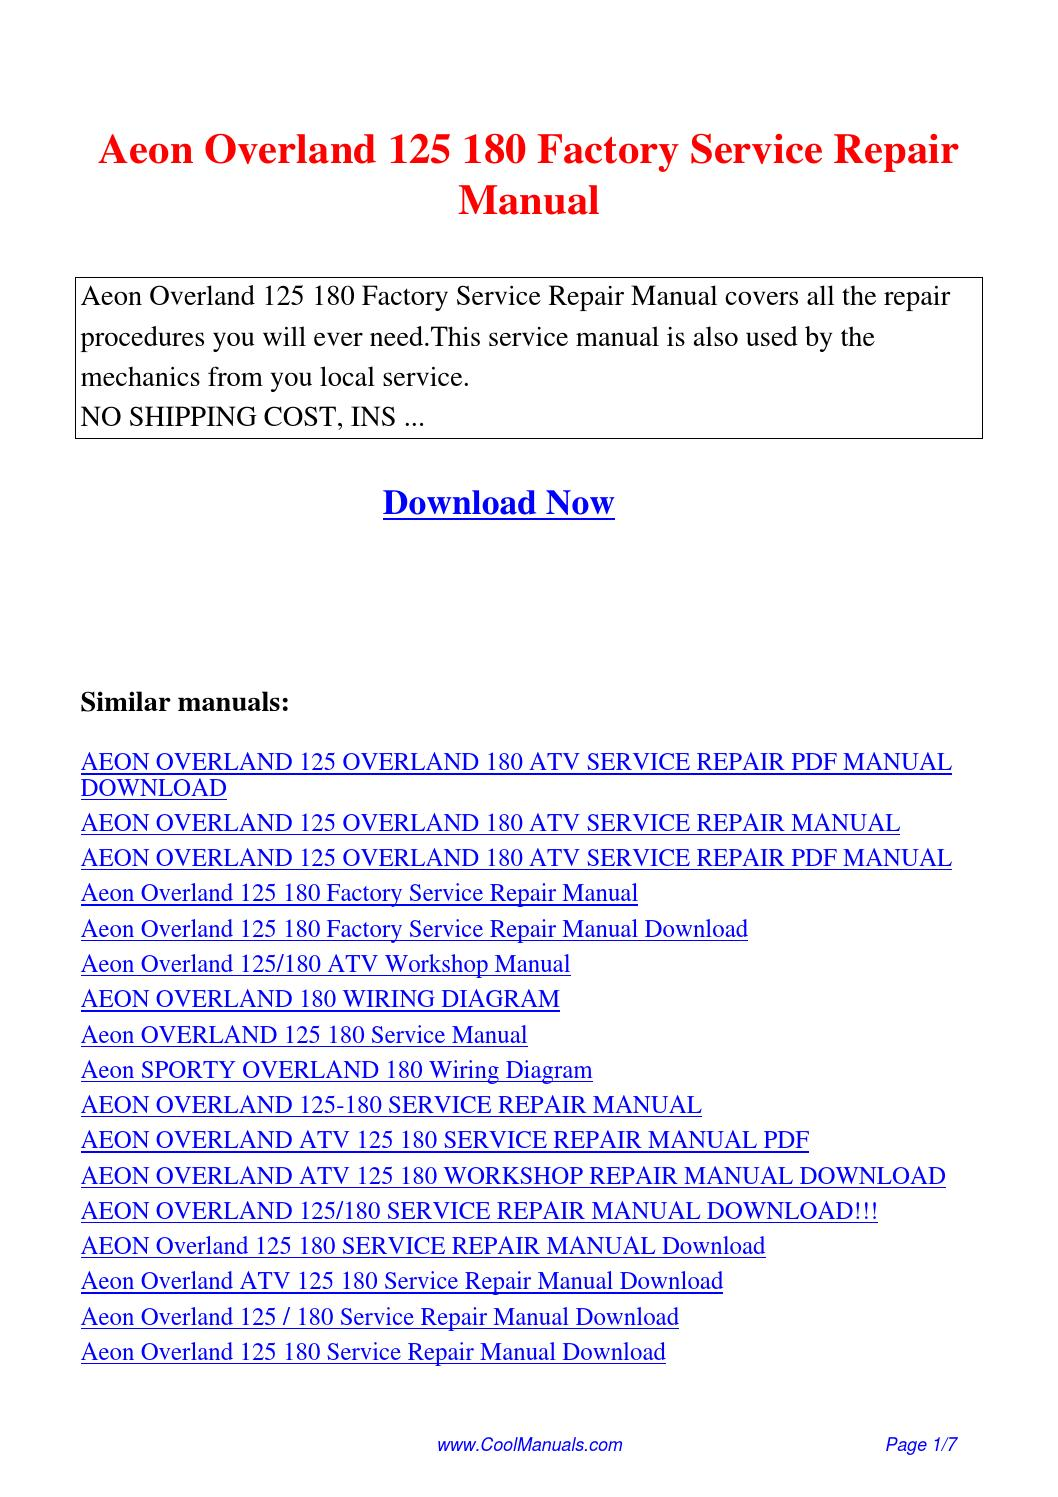 aeon quad wiring diagram auto transfer switch overland 125 180 factory service repair manual pdf by